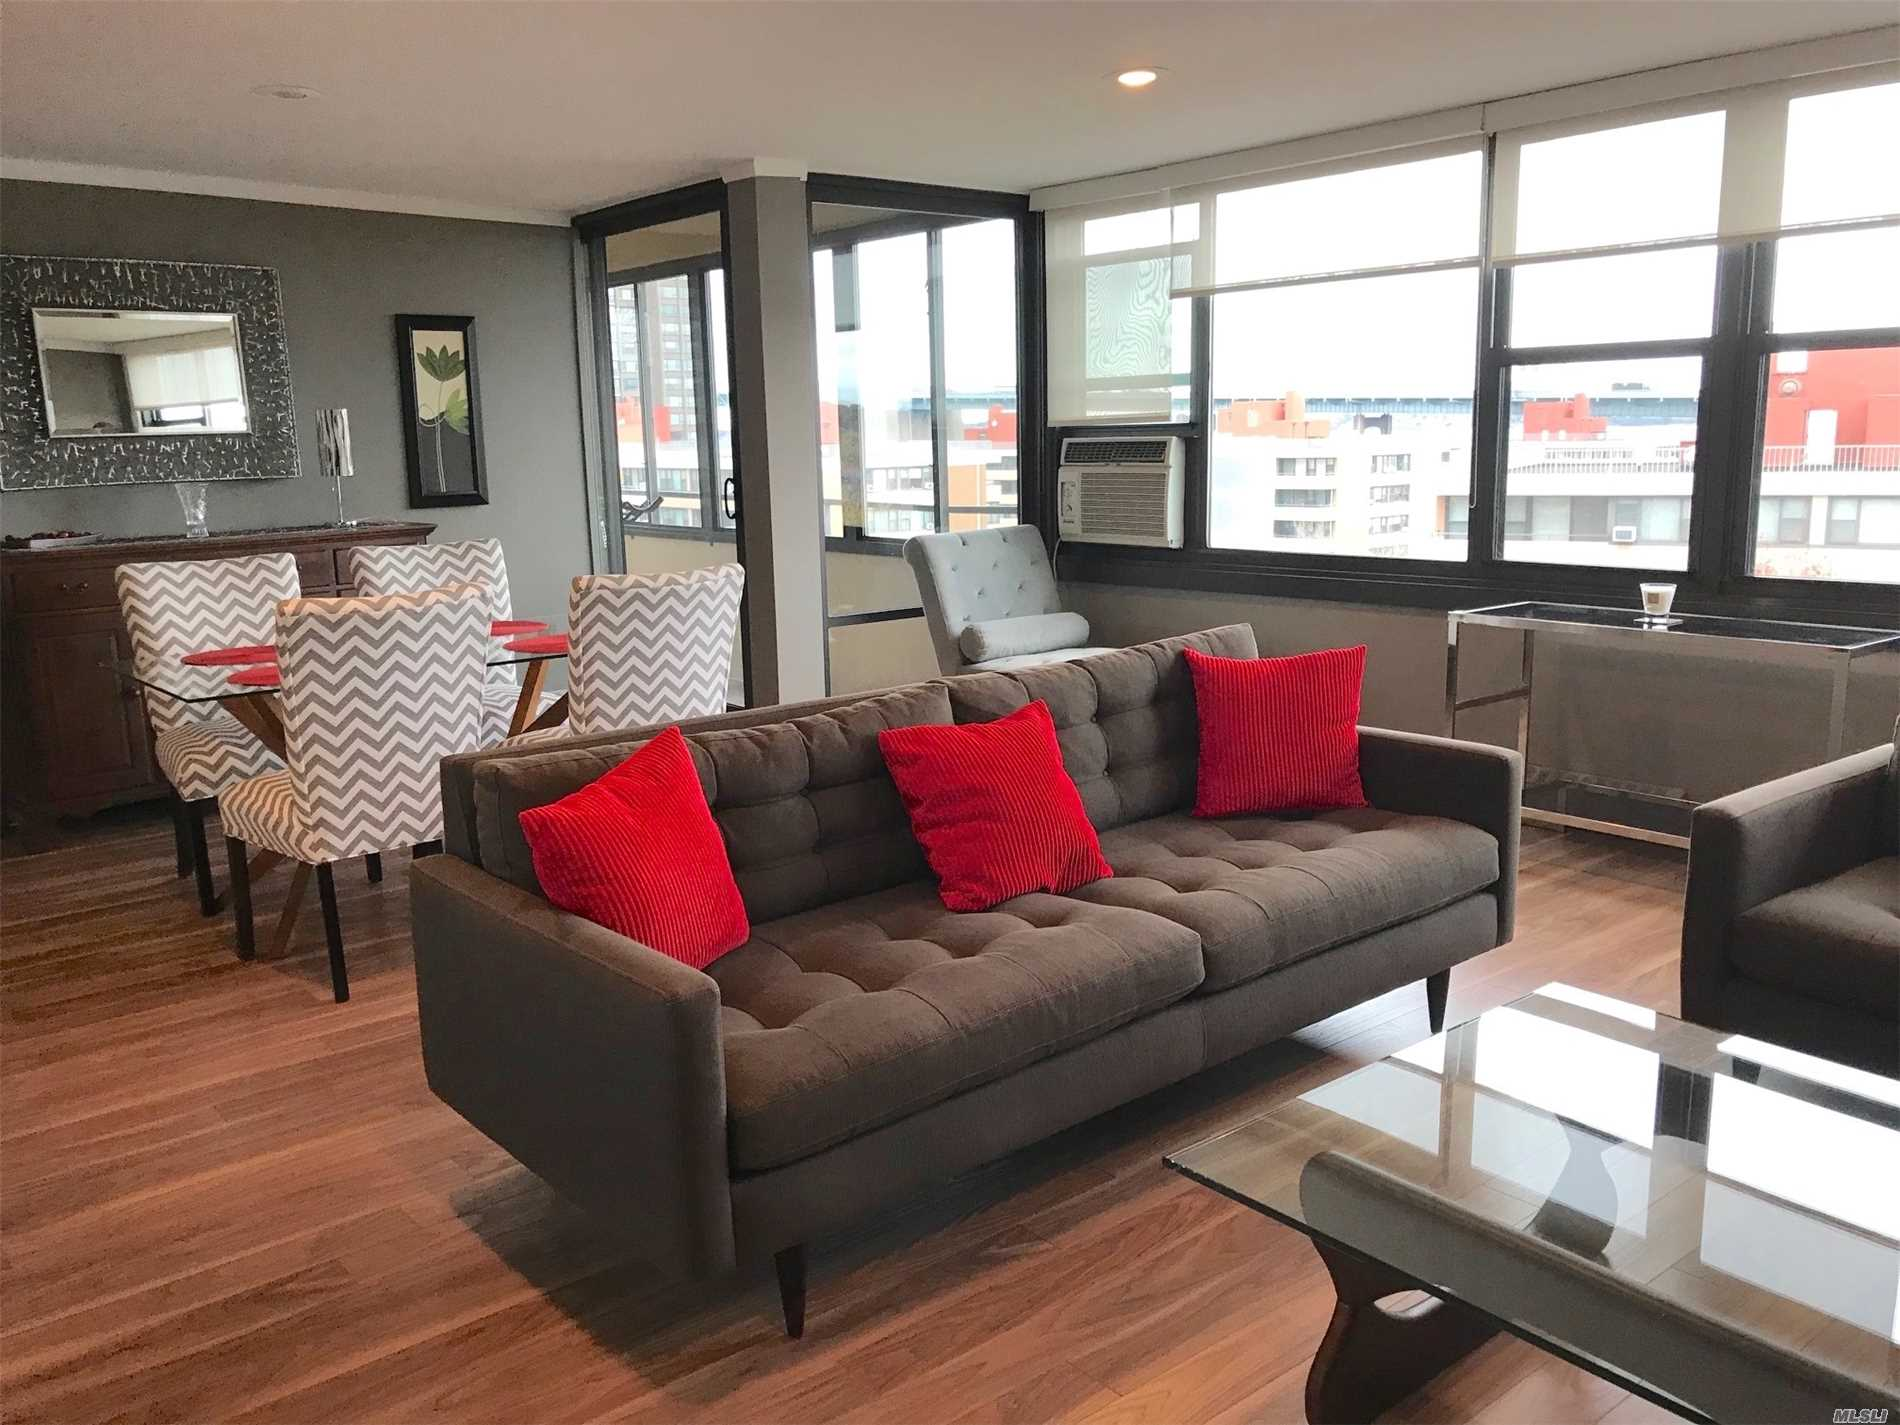 Penthouse With Panoramic Bridge And Waterviews. Pristine And Ready To Move Right Into This Gem... Brand New Open Concept Kitchen With Granite And Stainless Steal Appliances. New Euro Bath. Flat Ceilings With Recessed Lighting. New Closet Doors. Engineered Wood Floors. Enclosed Terrace. Prime Parking Space Available For Transfer 8, 500